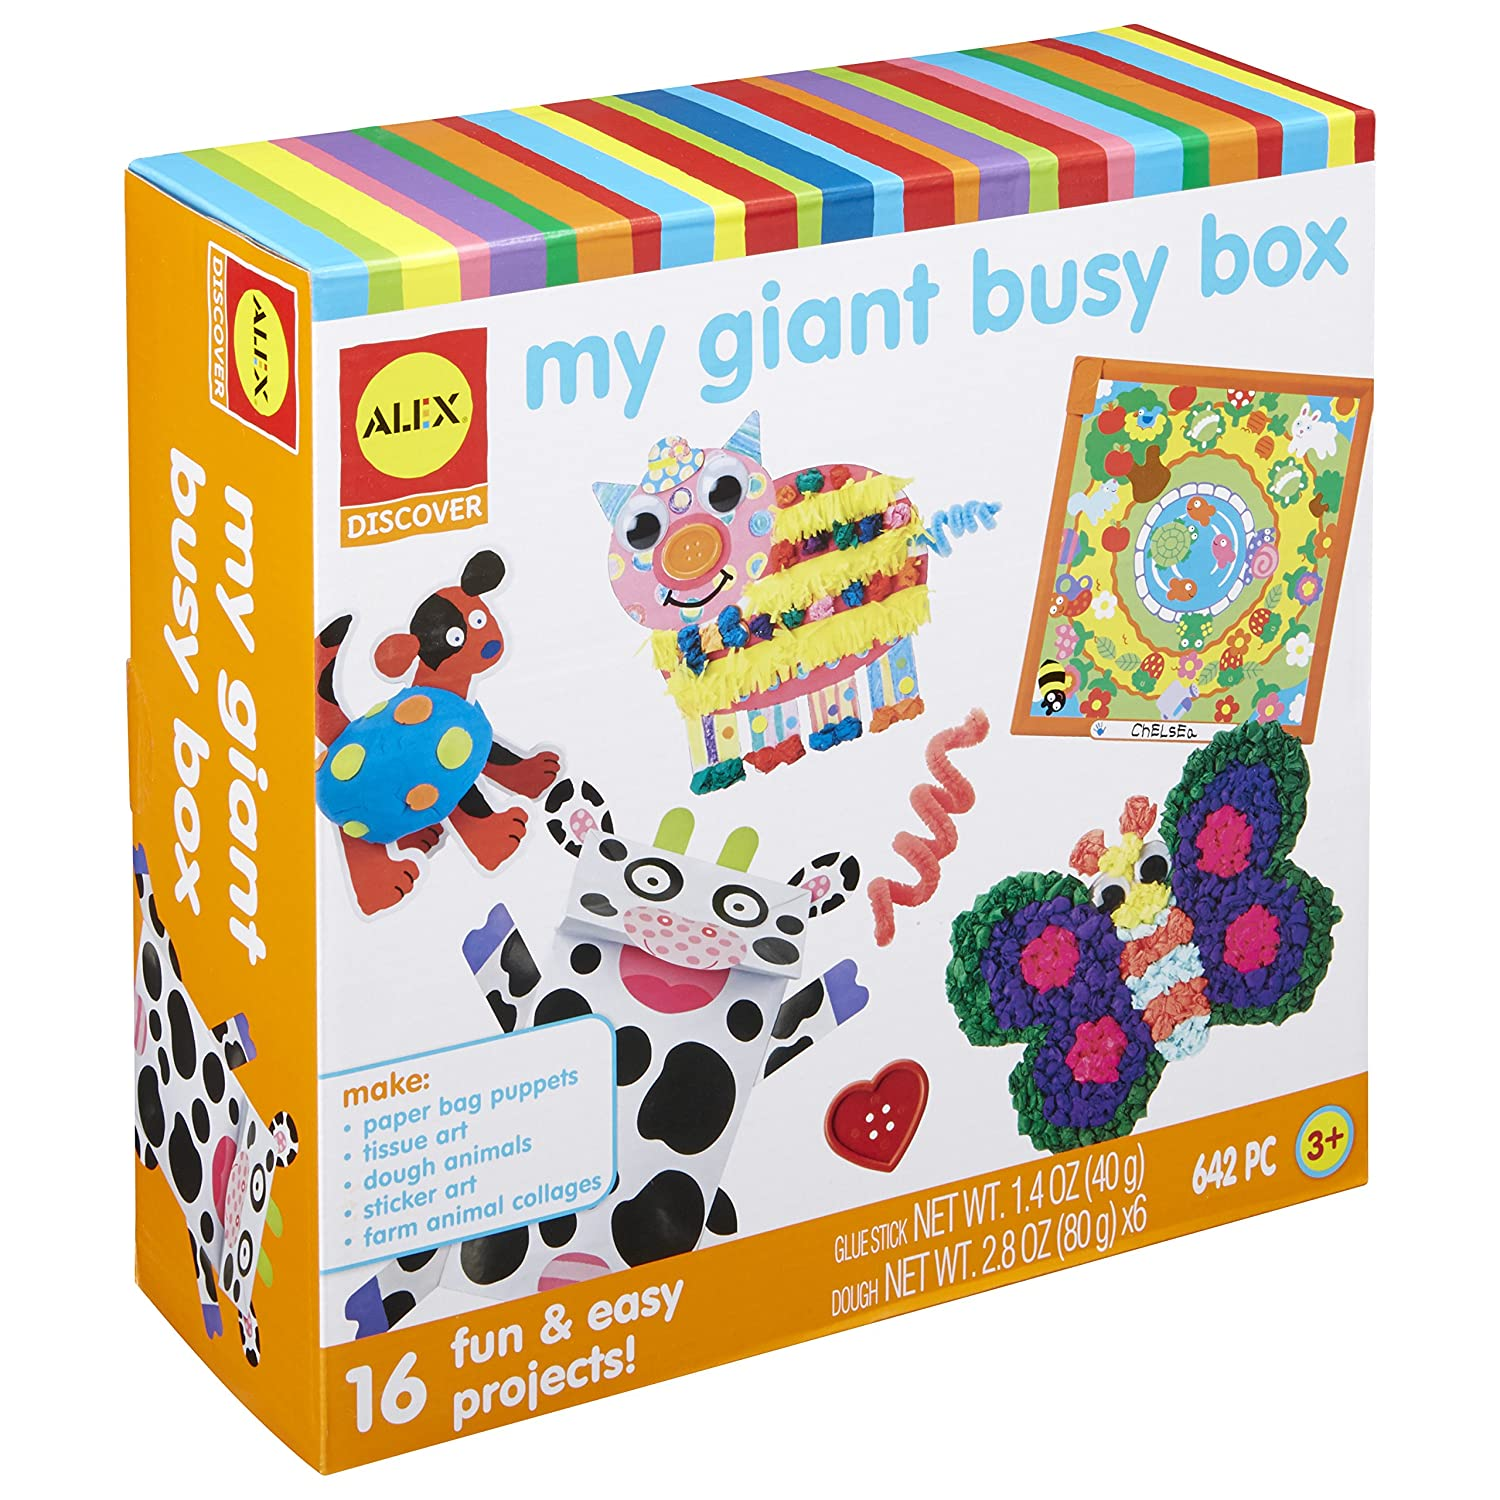 Amazon.com: ALEX Discover My Giant Busy Box: Toys & Games